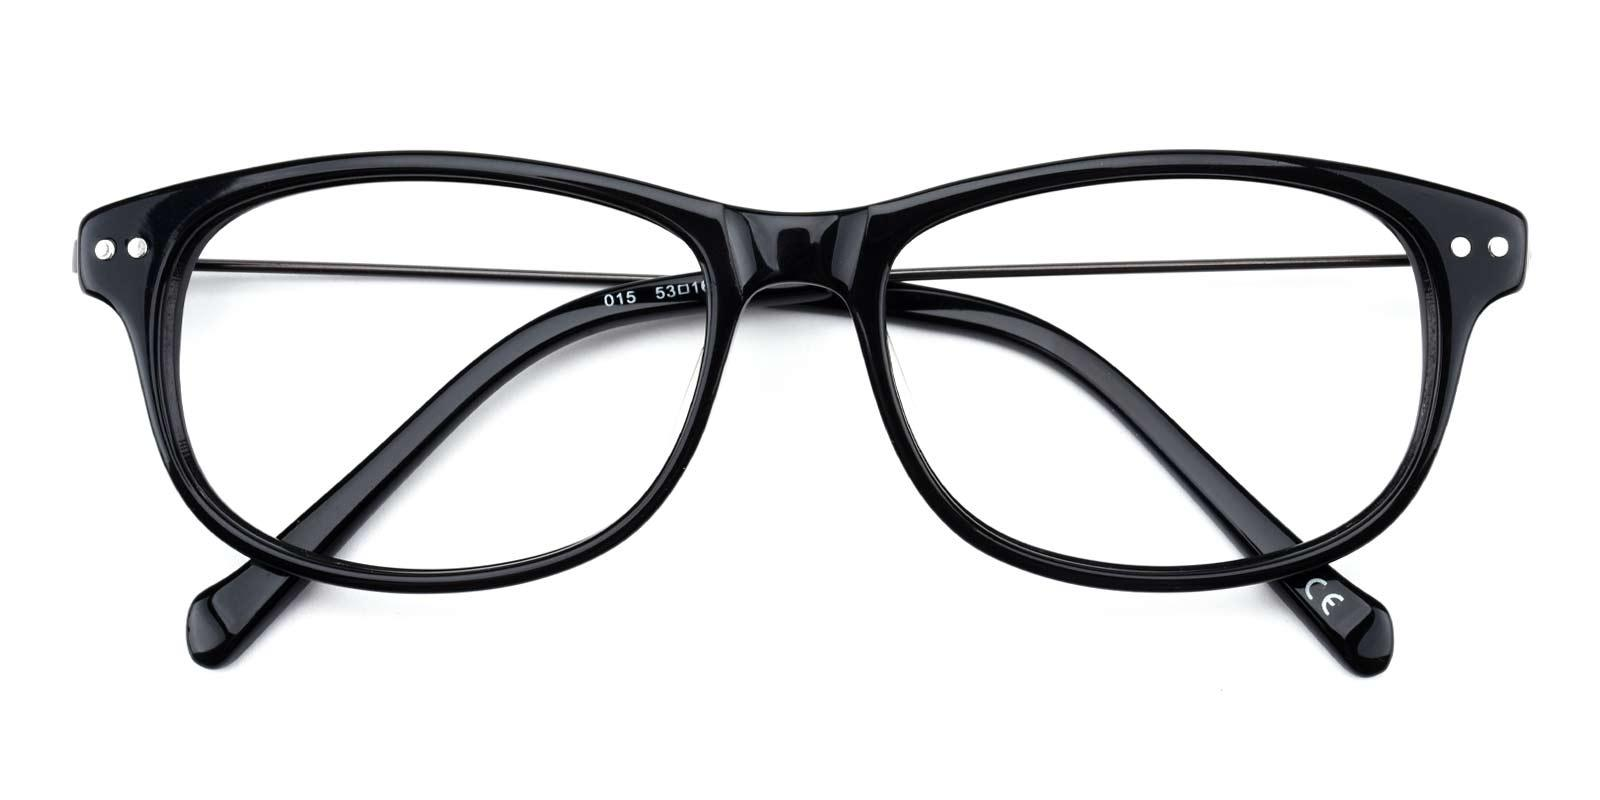 Gulmira-Black-Rectangle-Plastic-Eyeglasses-detail